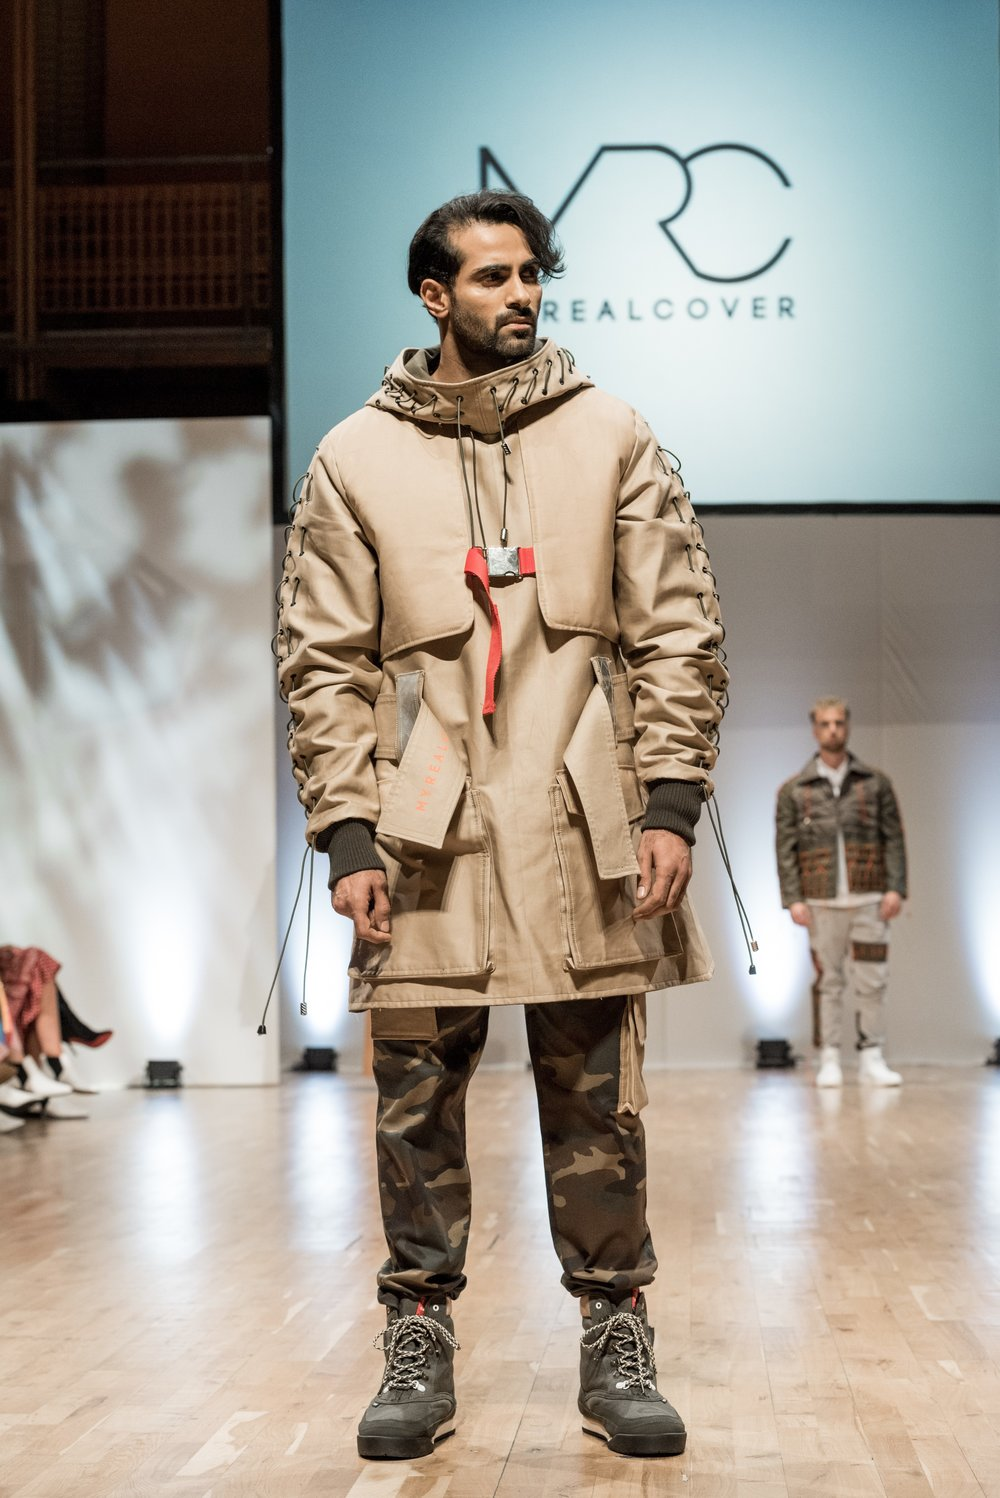 WINNER EMERGING DESIGNER OF THE YEAR 2018 DARREN SCOTT AT MYREALCOVER S 2018209.jpg